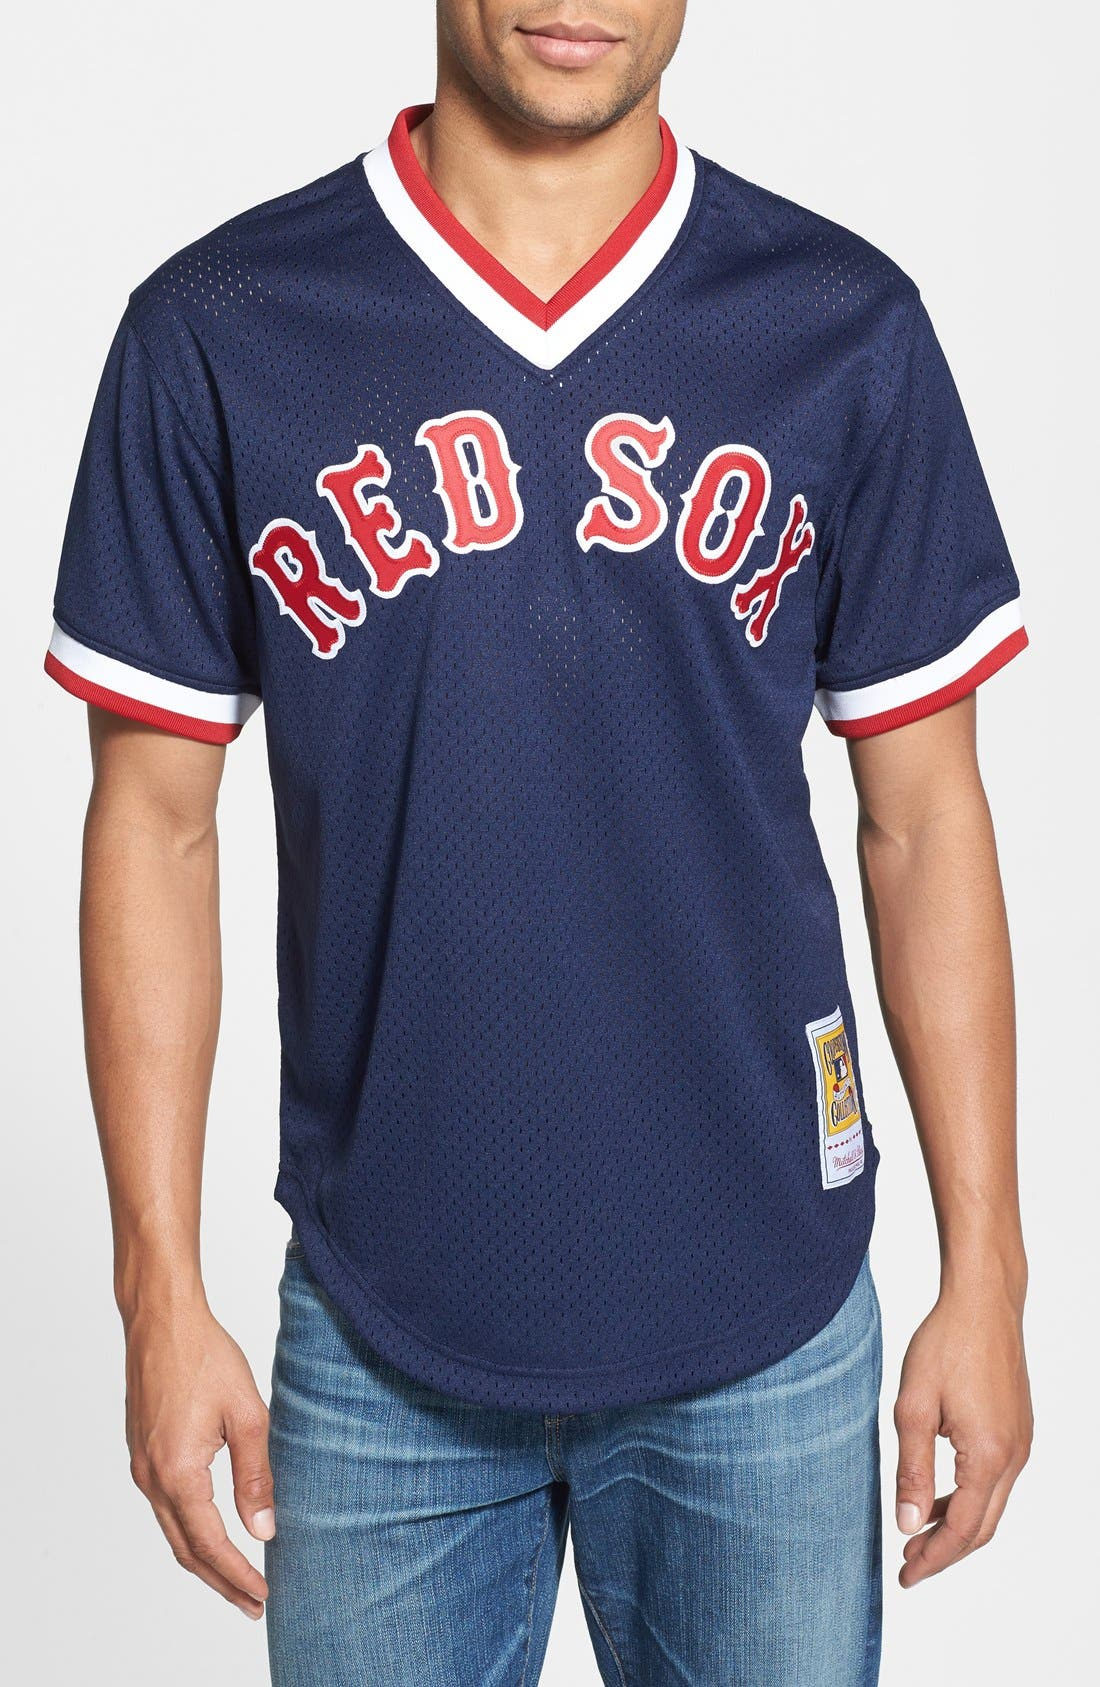 Main Image - Mitchell & Ness 'Ted Williams - Boston Red Sox' Authentic Mesh BP Jersey